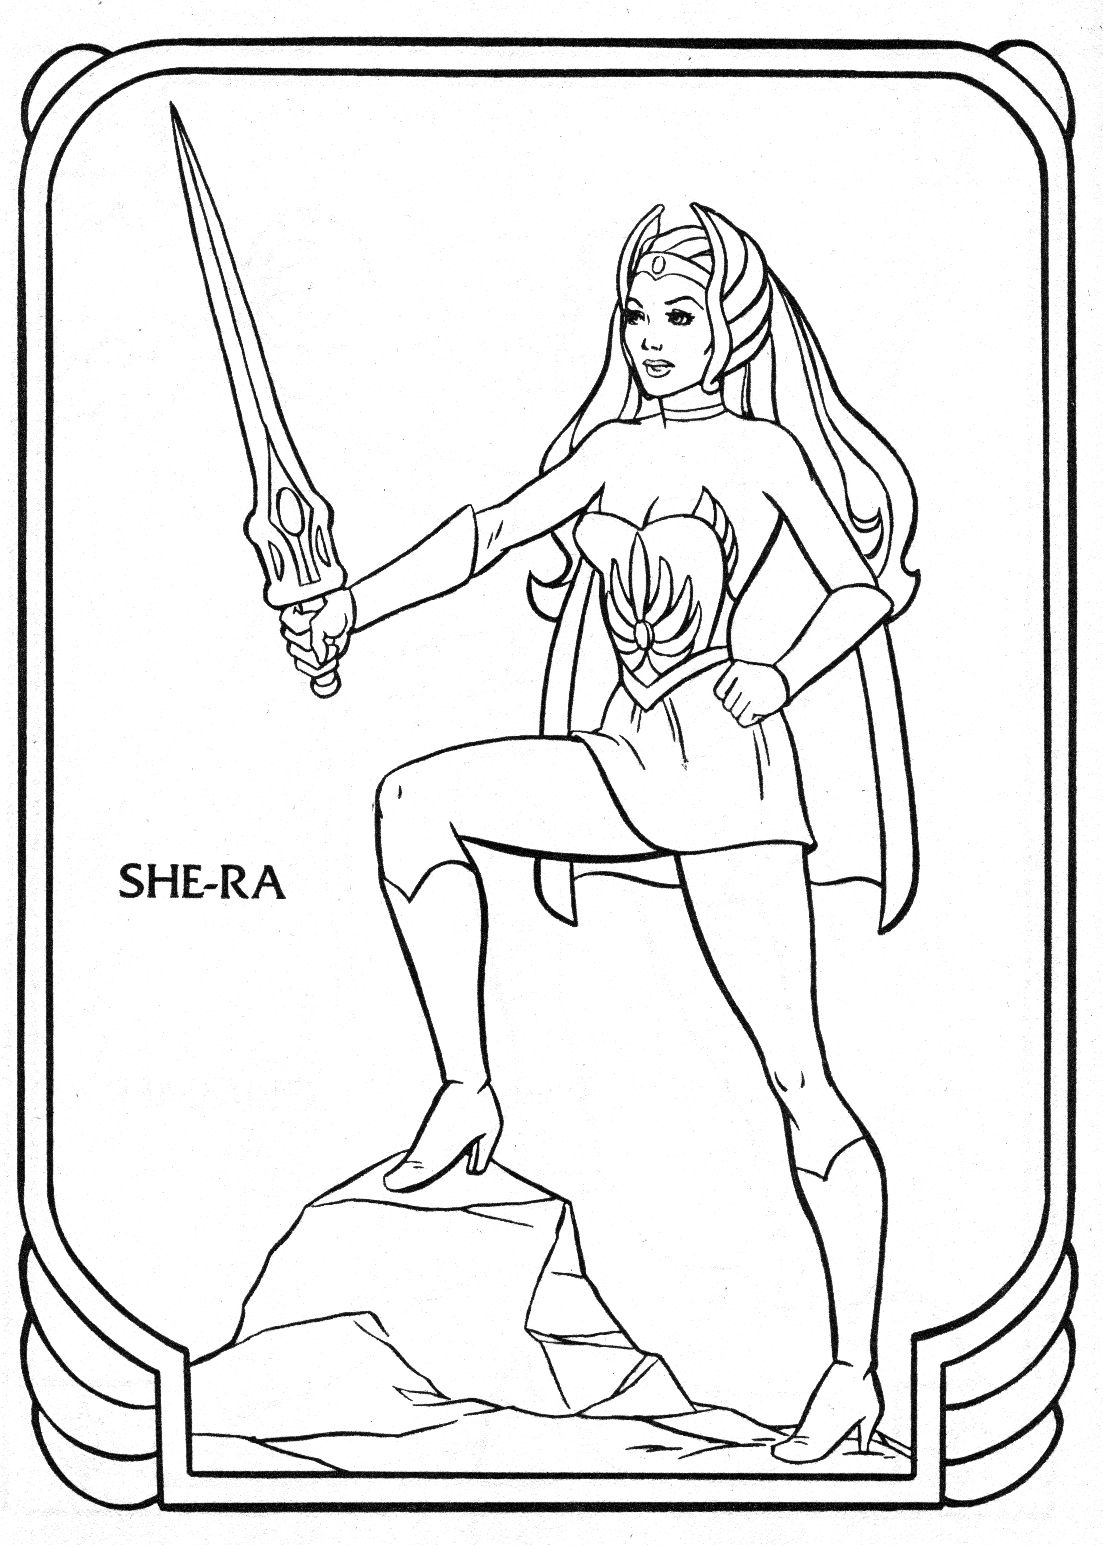 HeMan Coloring Book Pages Coloring book pages